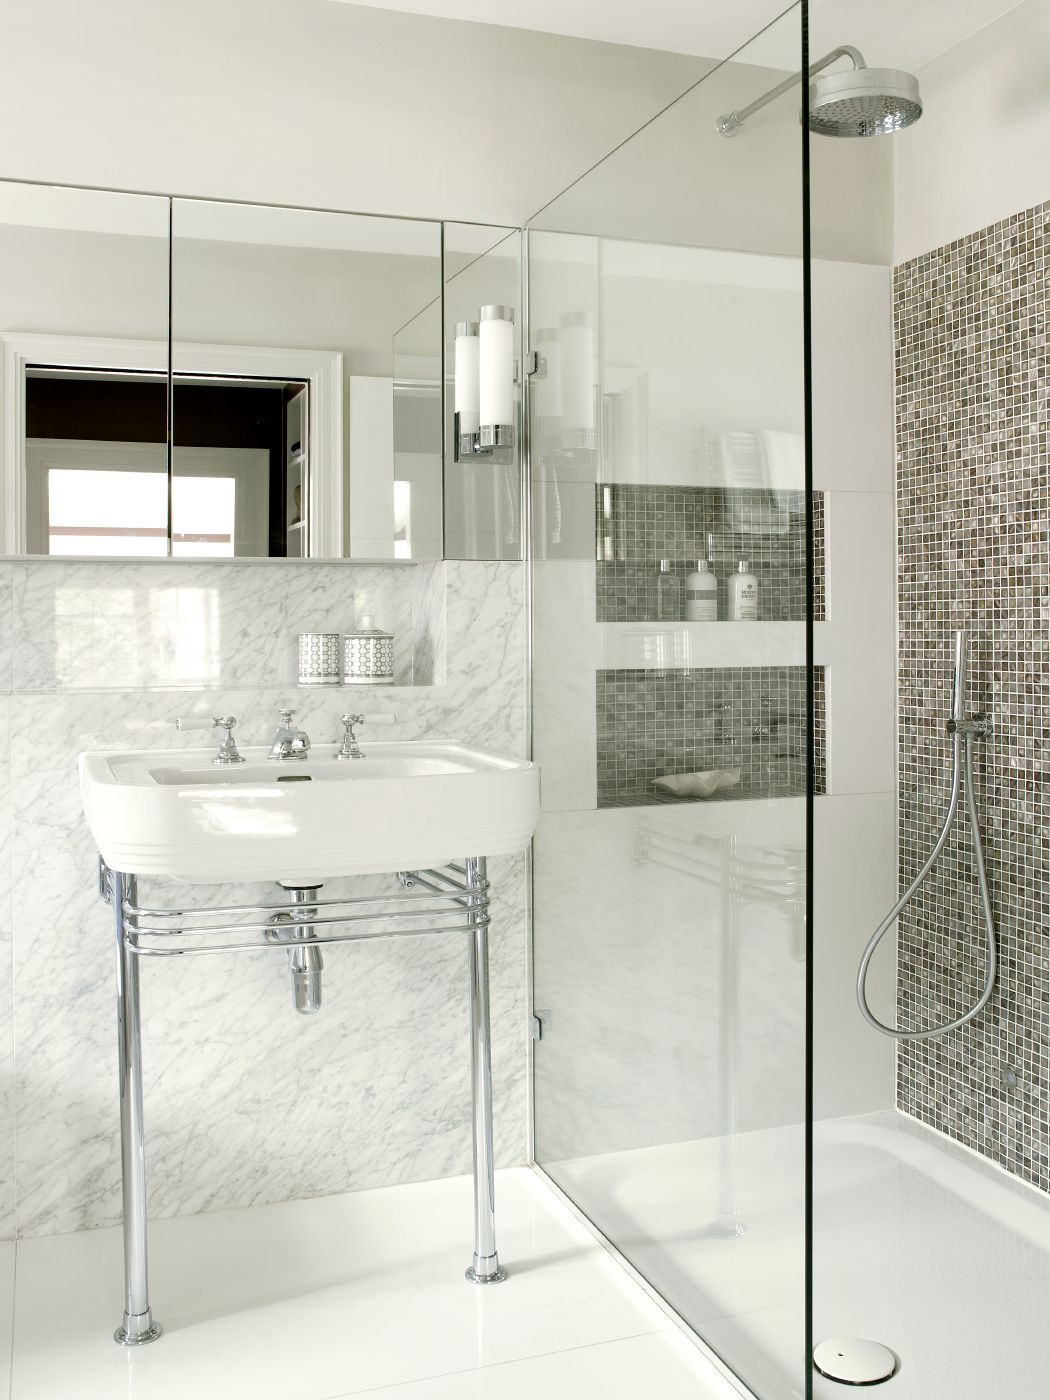 marble bathroom with mother of pearl mosaic tiles | Bathrooms ...